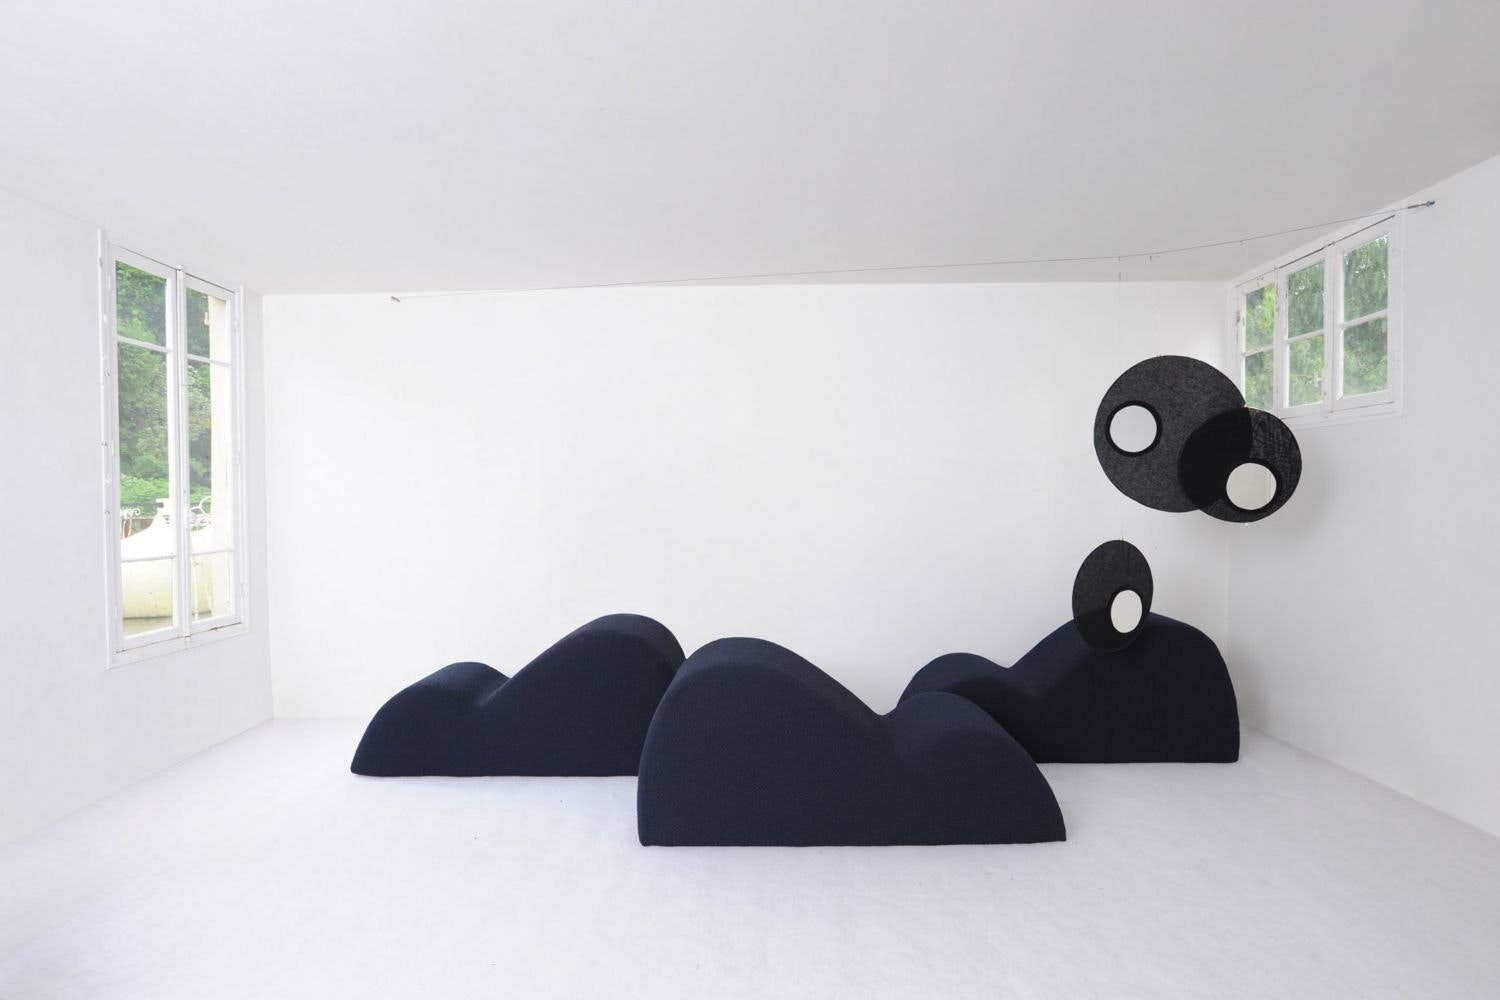 Dune Chaise Longue by Stephanie Marin for Smarin